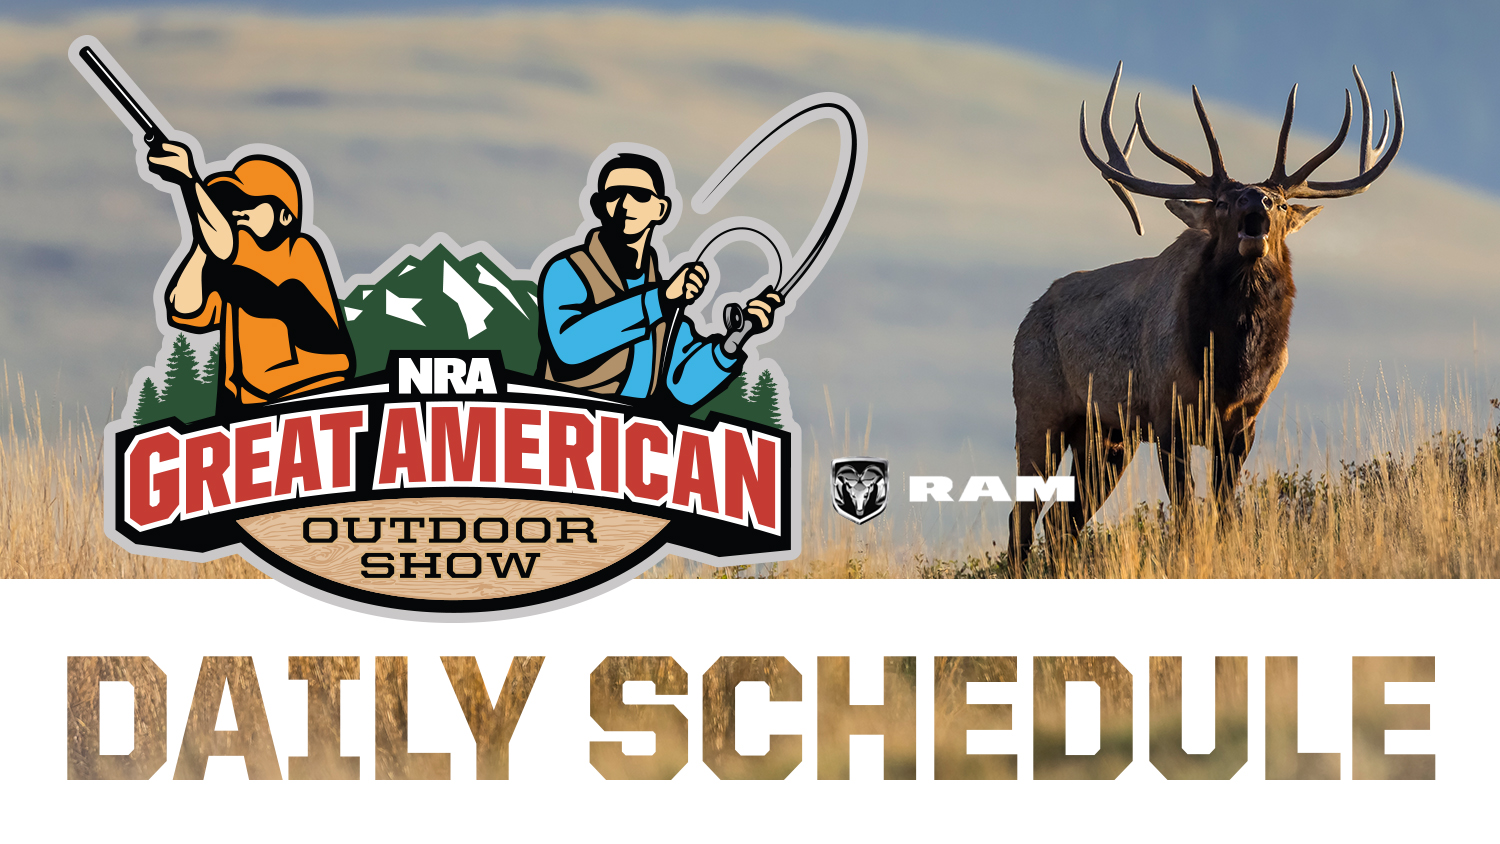 2019 Great American Outdoor Show Daily Schedule - Sunday, February 3